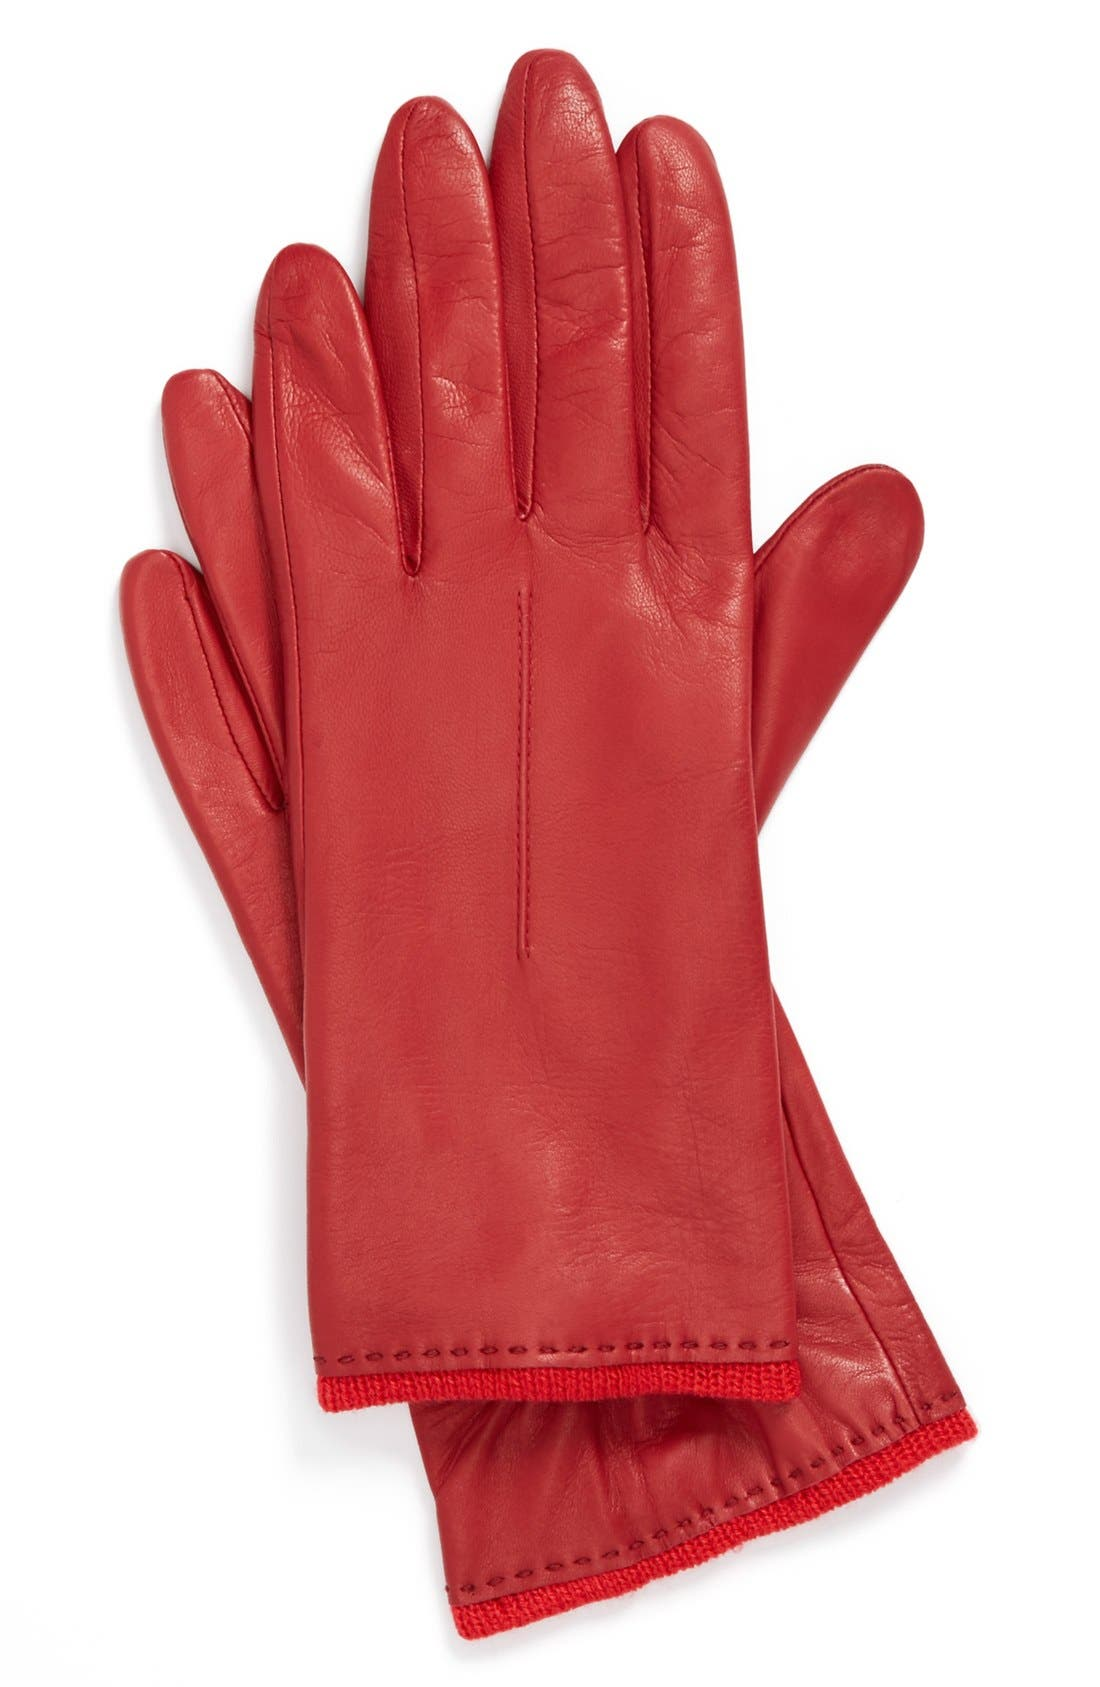 Alternate Image 1 Selected - Fownes Brothers Metisse Leather Glove (Special Purchase)